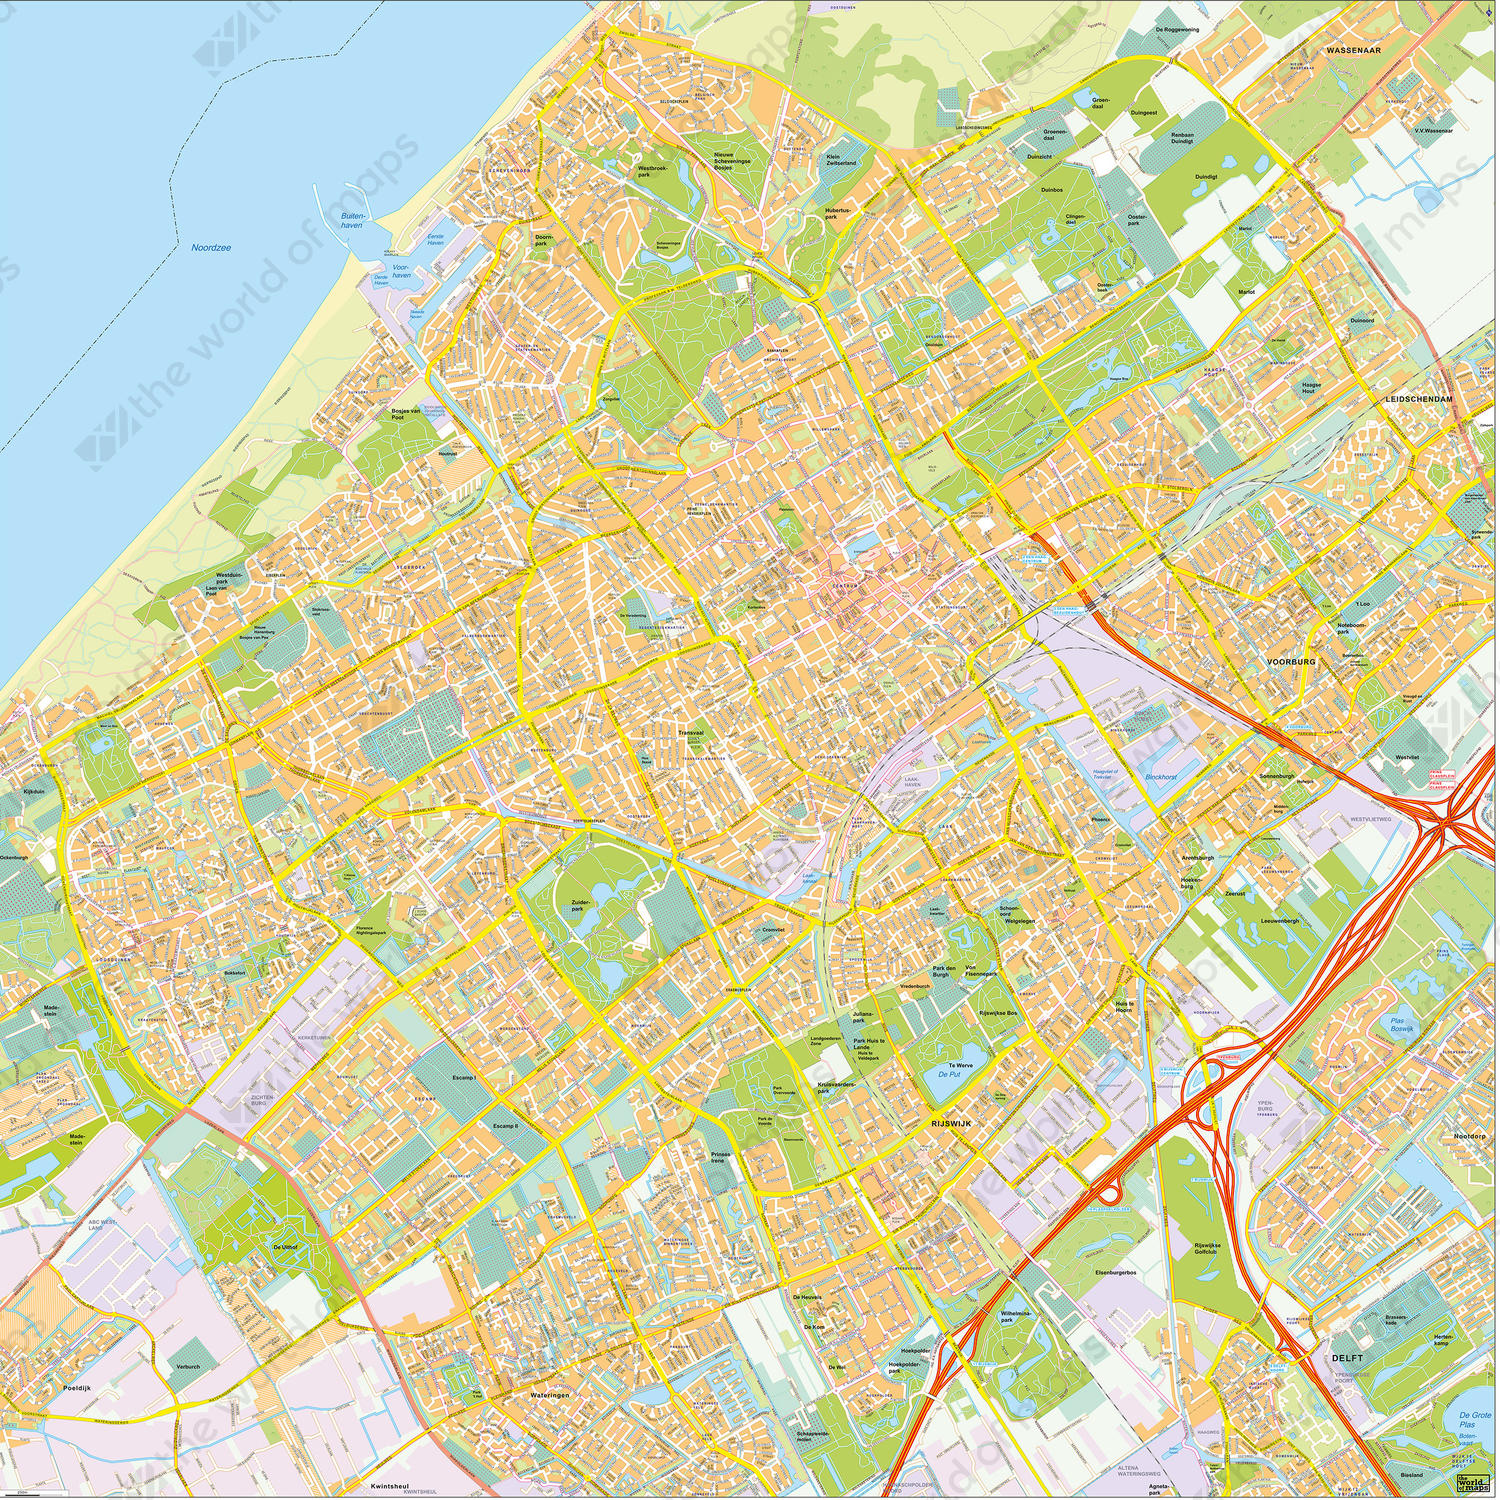 Digital City Map The Hague The World of Mapscom